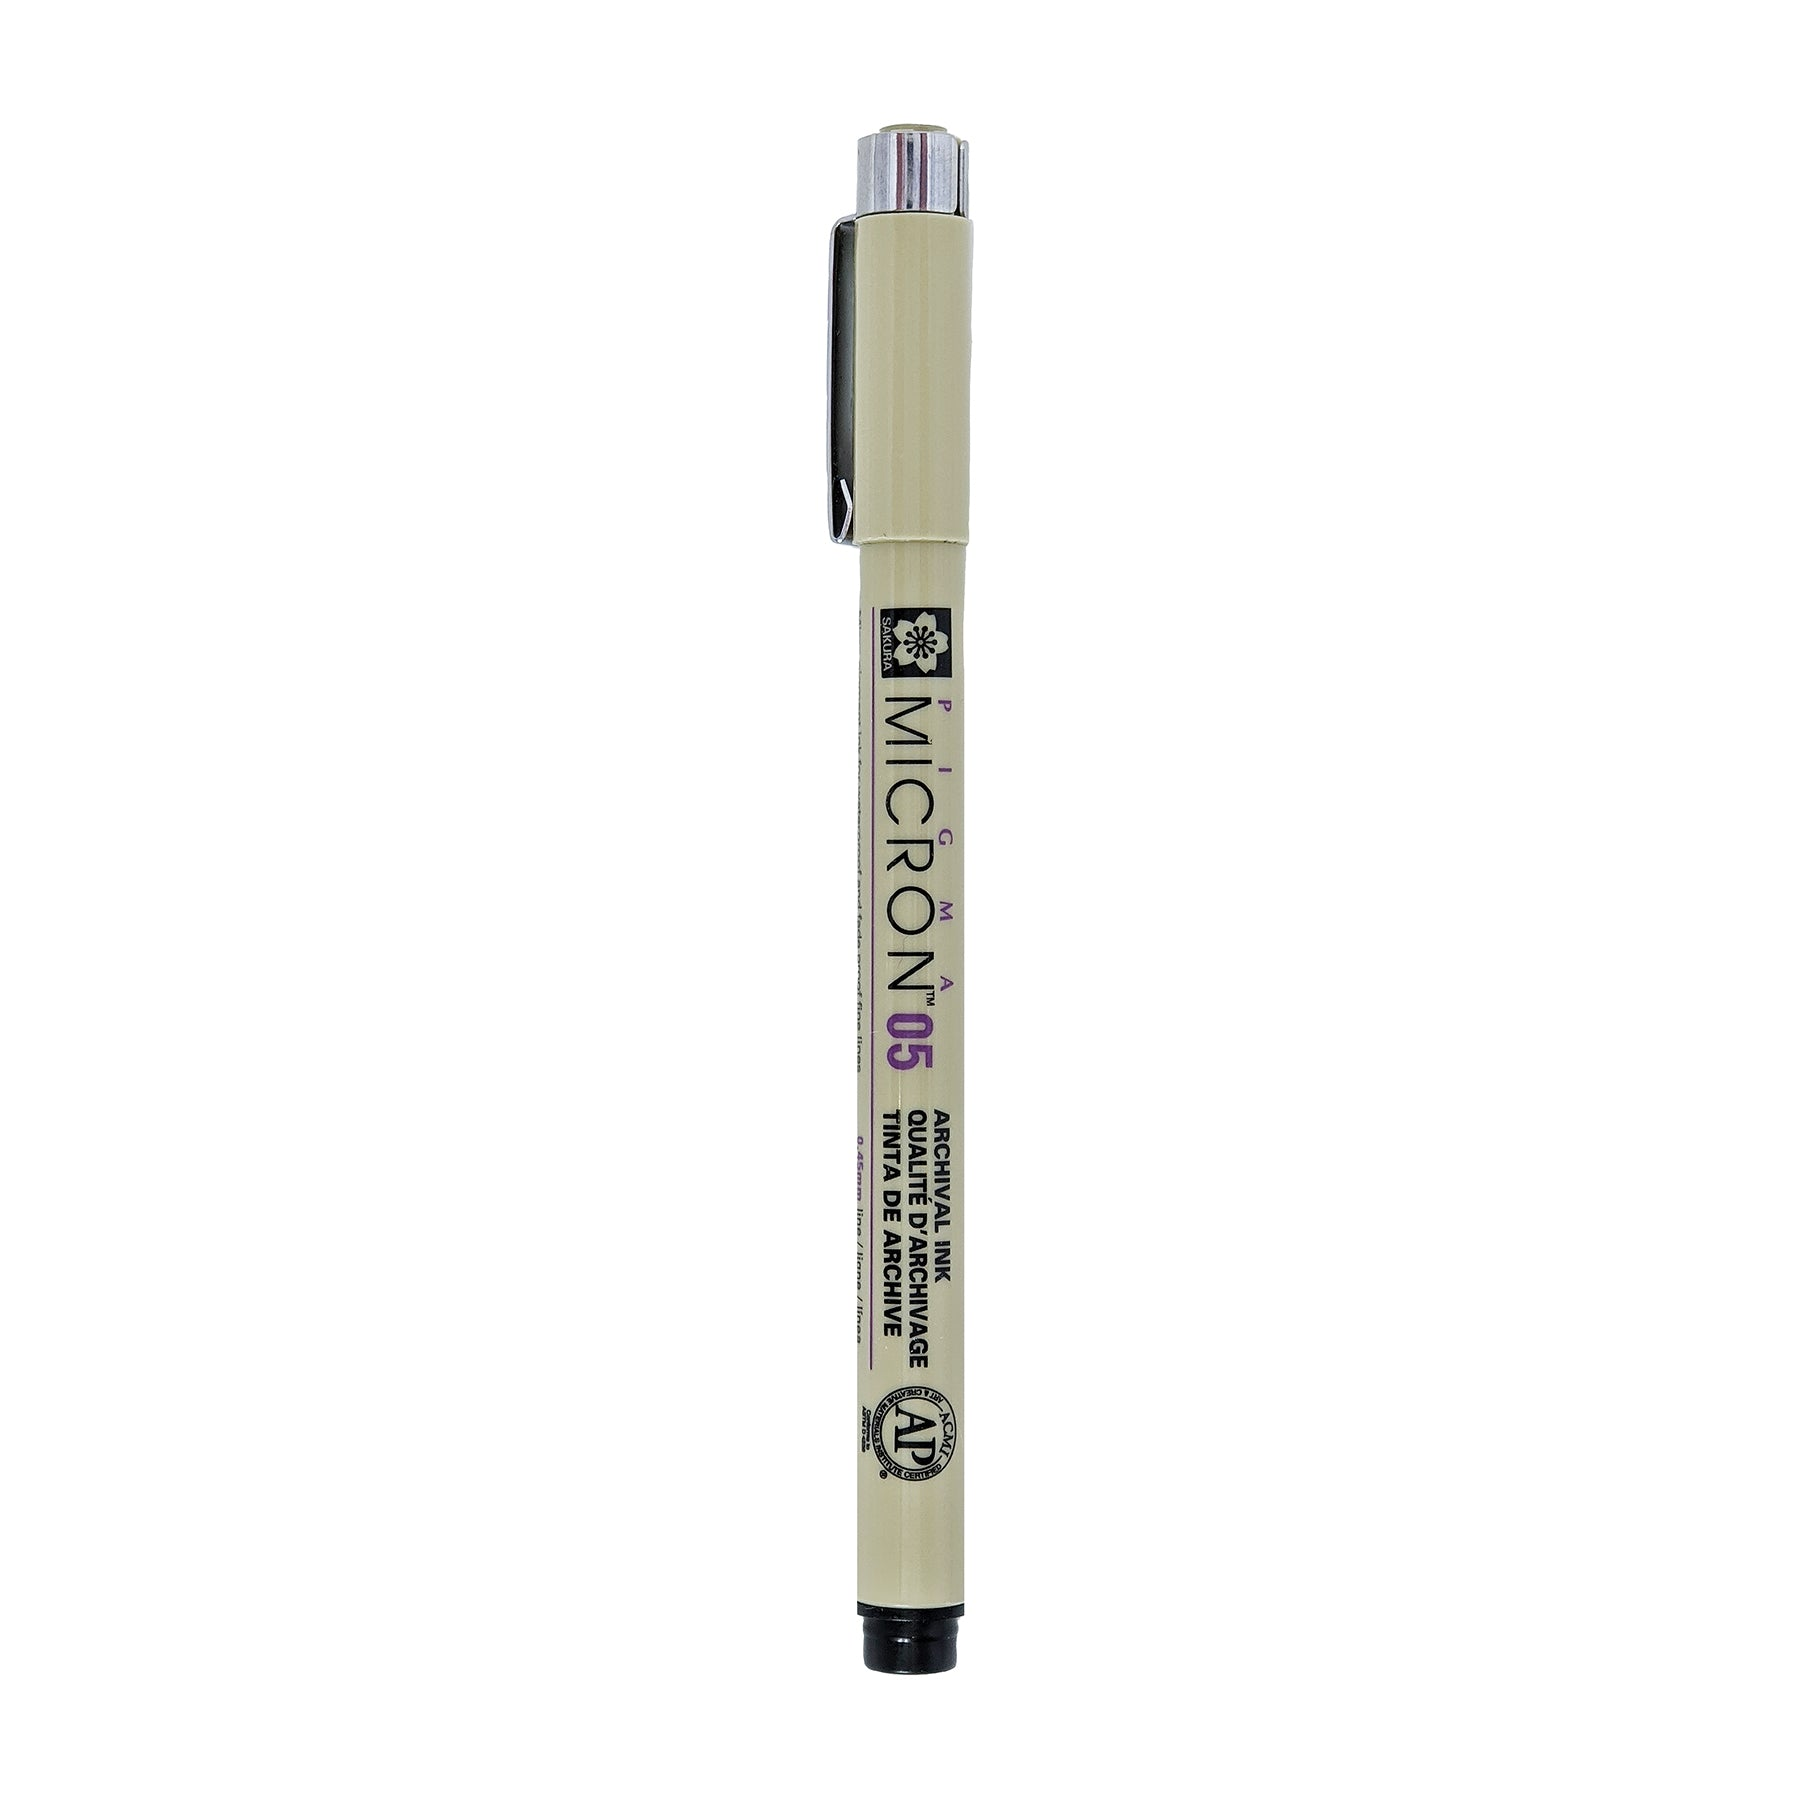 Pigma Micron Pen - Black (.45mm)